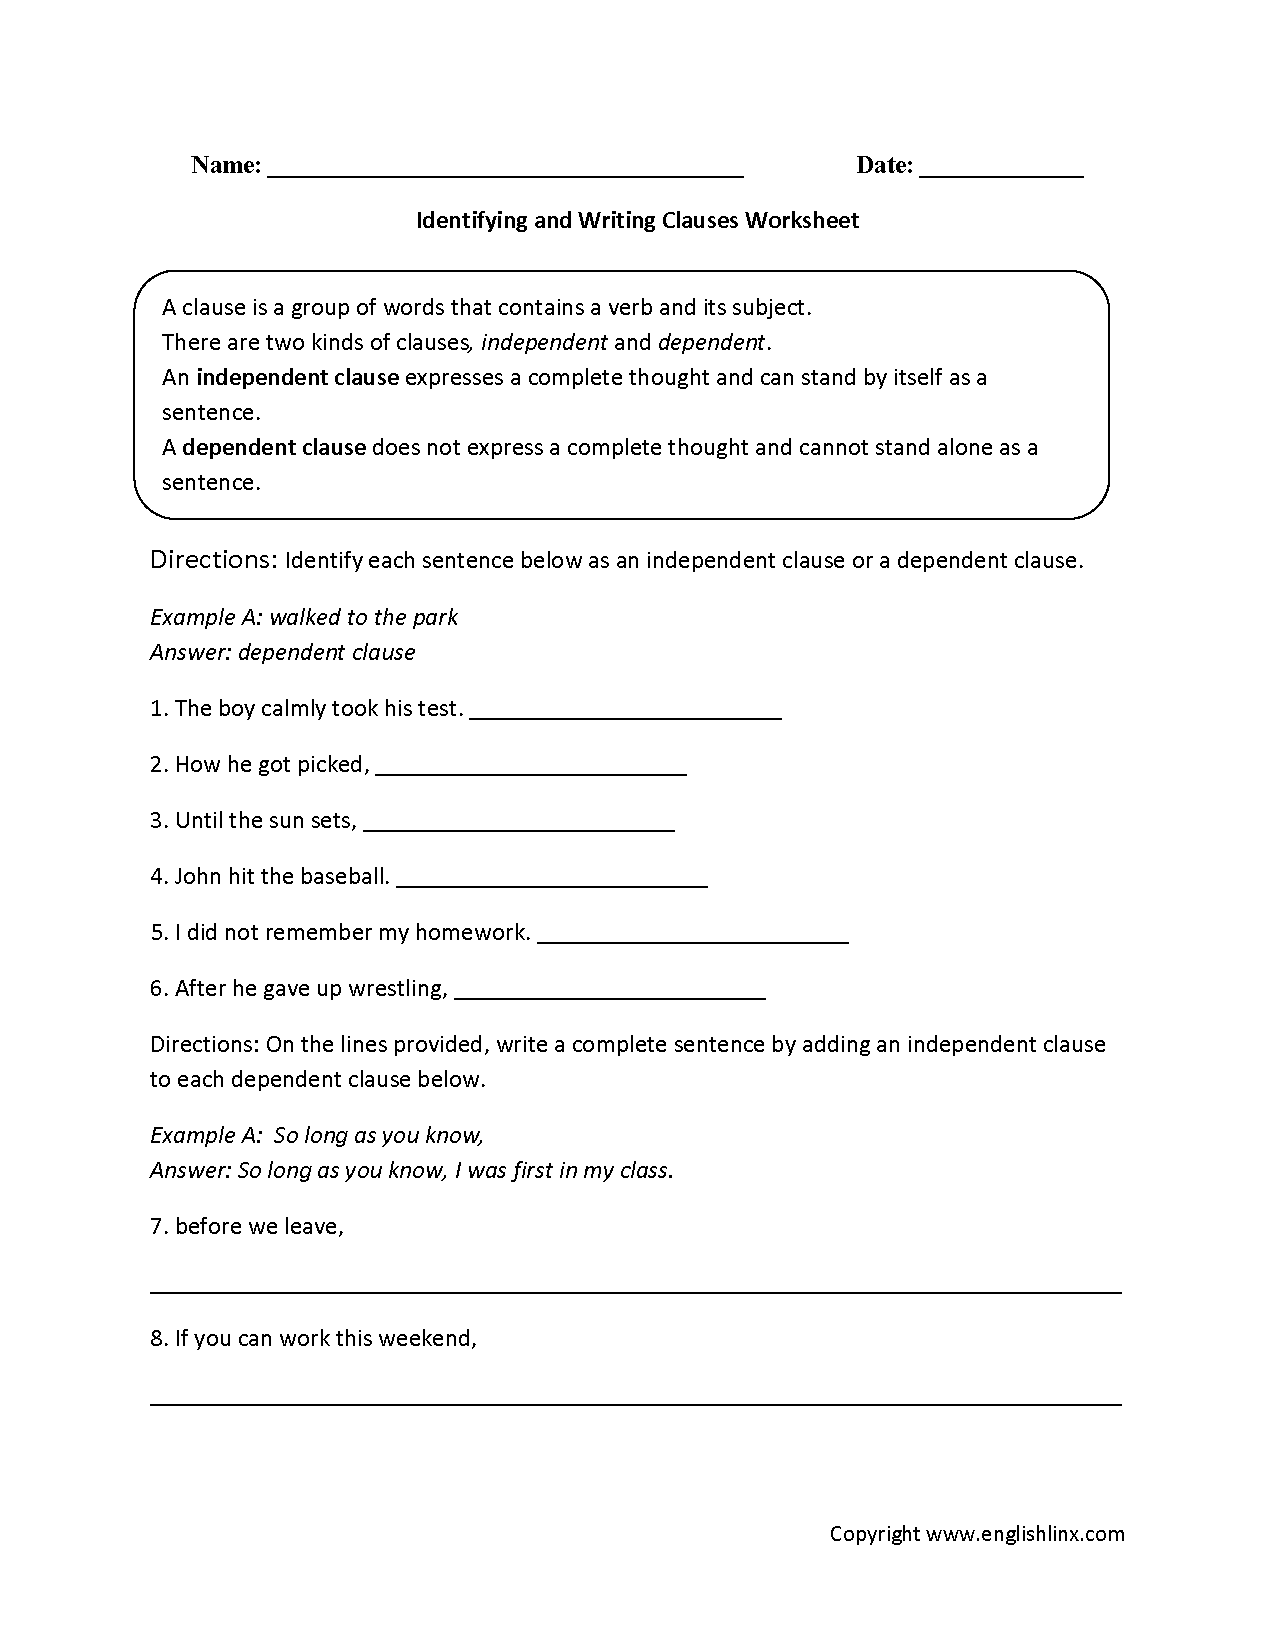 Worksheets Independent And Dependent Clauses Worksheets englishlinx com clauses worksheets identifying and writing worksheet